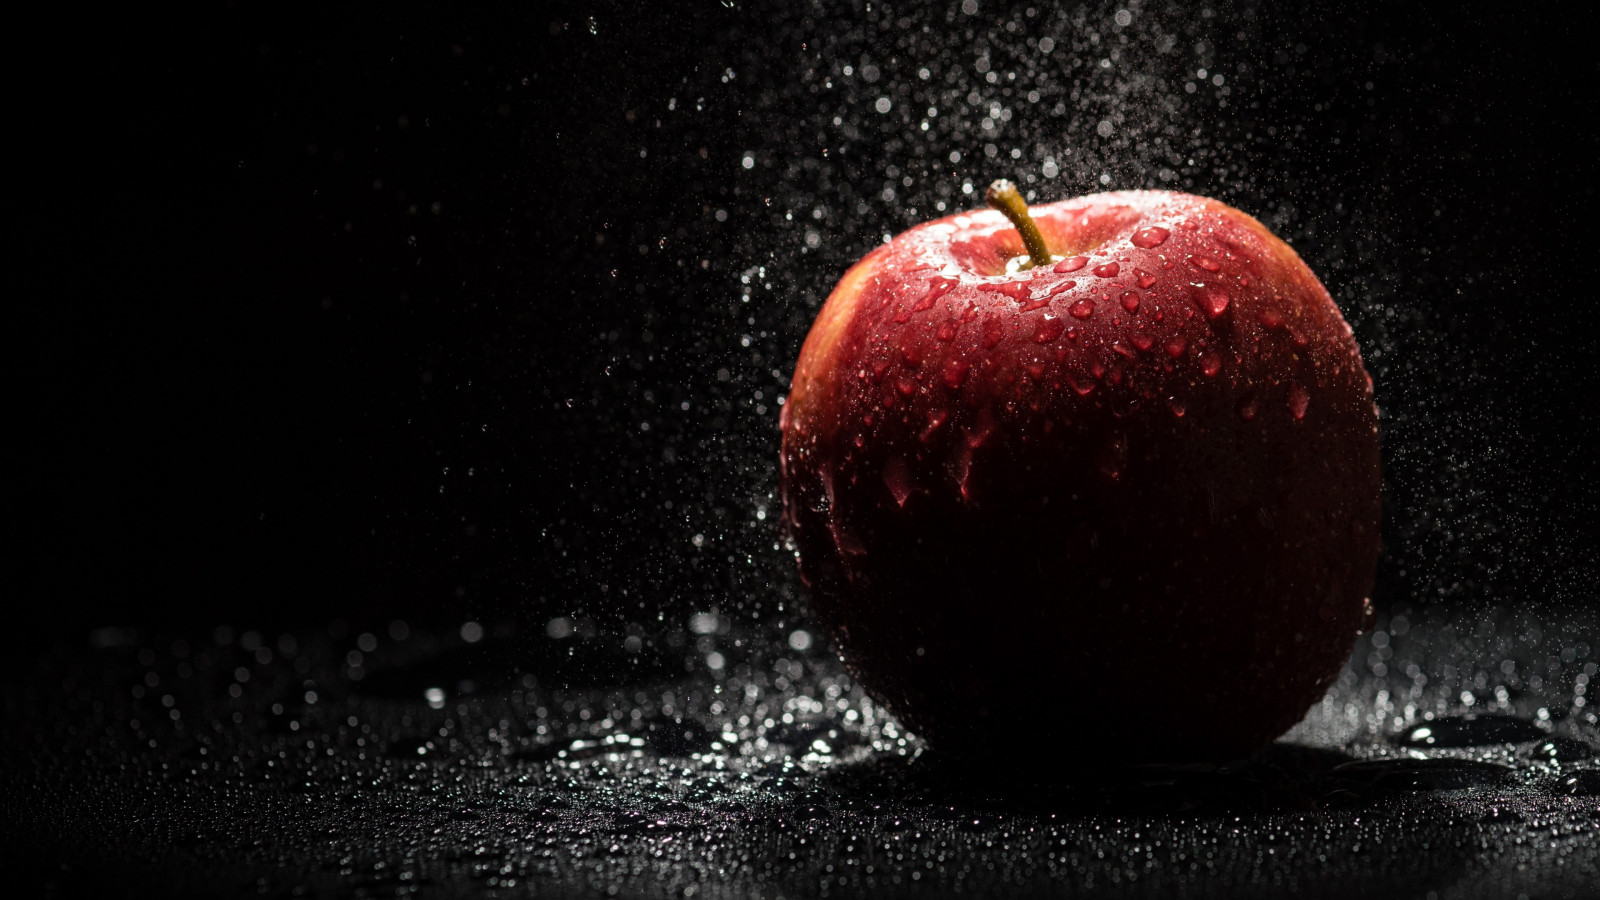 The apple, natural red apple wallpaper 1600x900